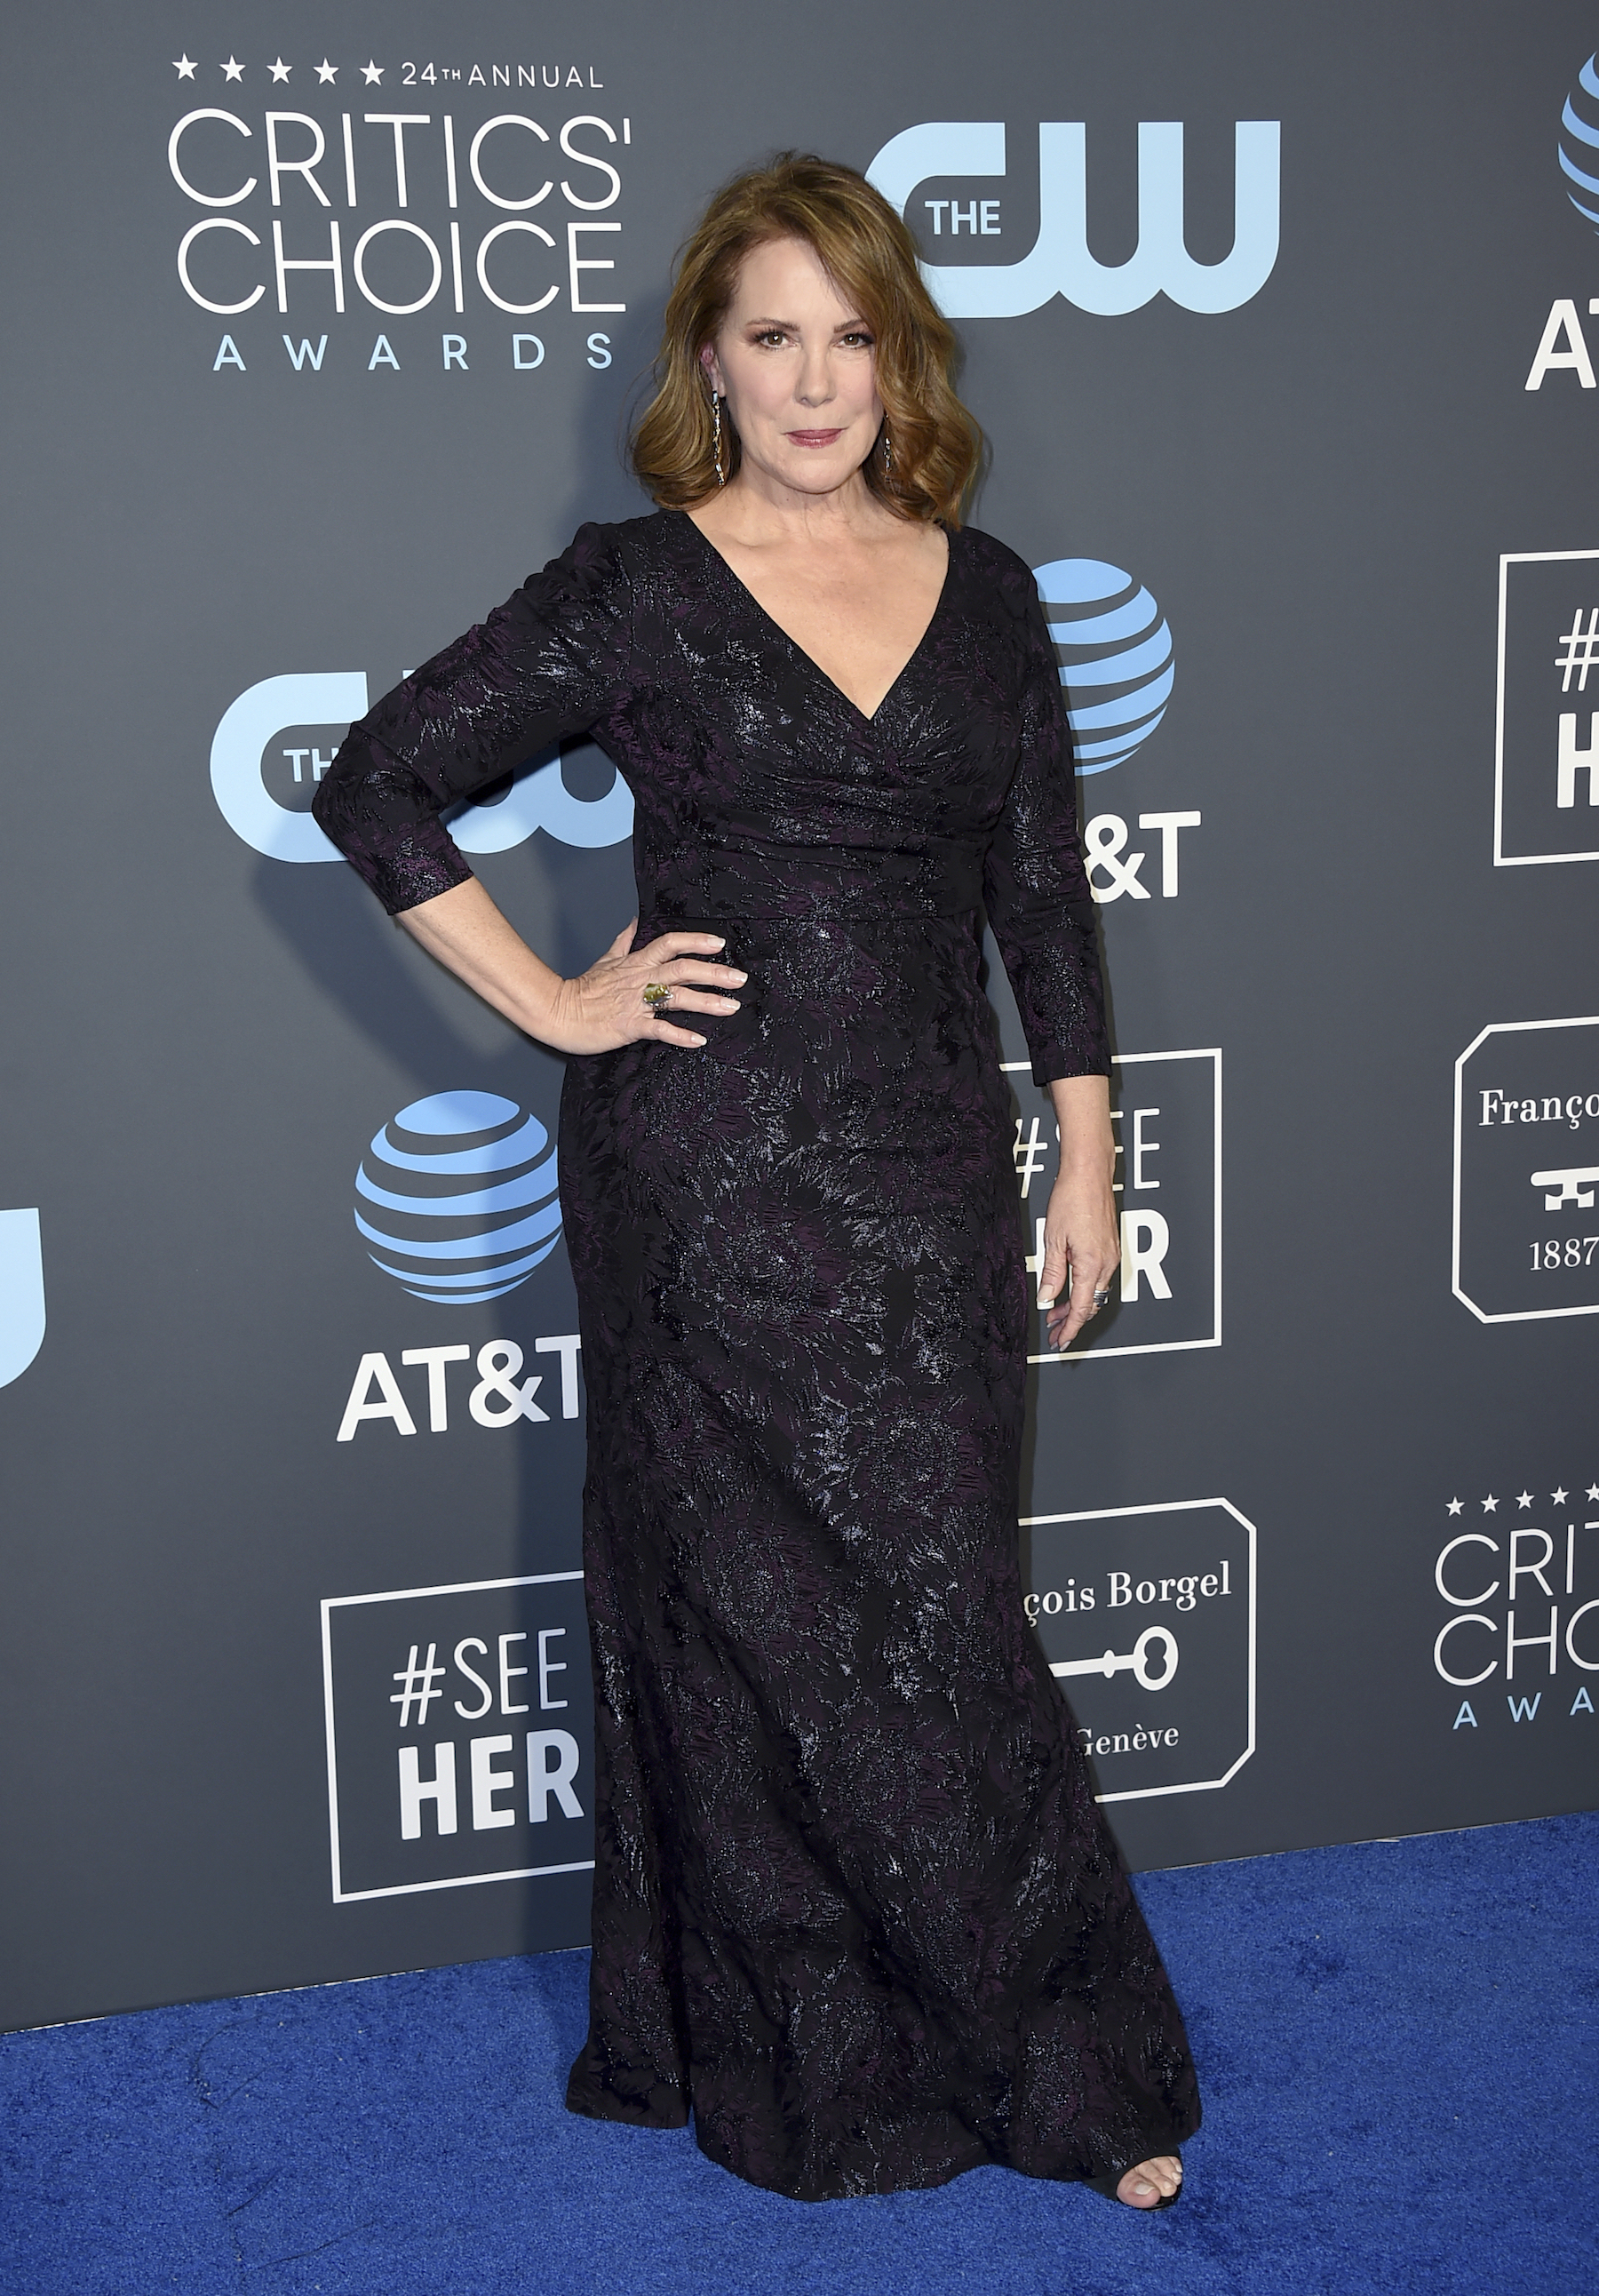 "<div class=""meta image-caption""><div class=""origin-logo origin-image ap""><span>AP</span></div><span class=""caption-text"">Elizabeth Perkins arrives at the 24th annual Critics' Choice Awards on Sunday, Jan. 13, 2019, at the Barker Hangar in Santa Monica, Calif. (Jordan Strauss/Invision/AP)</span></div>"